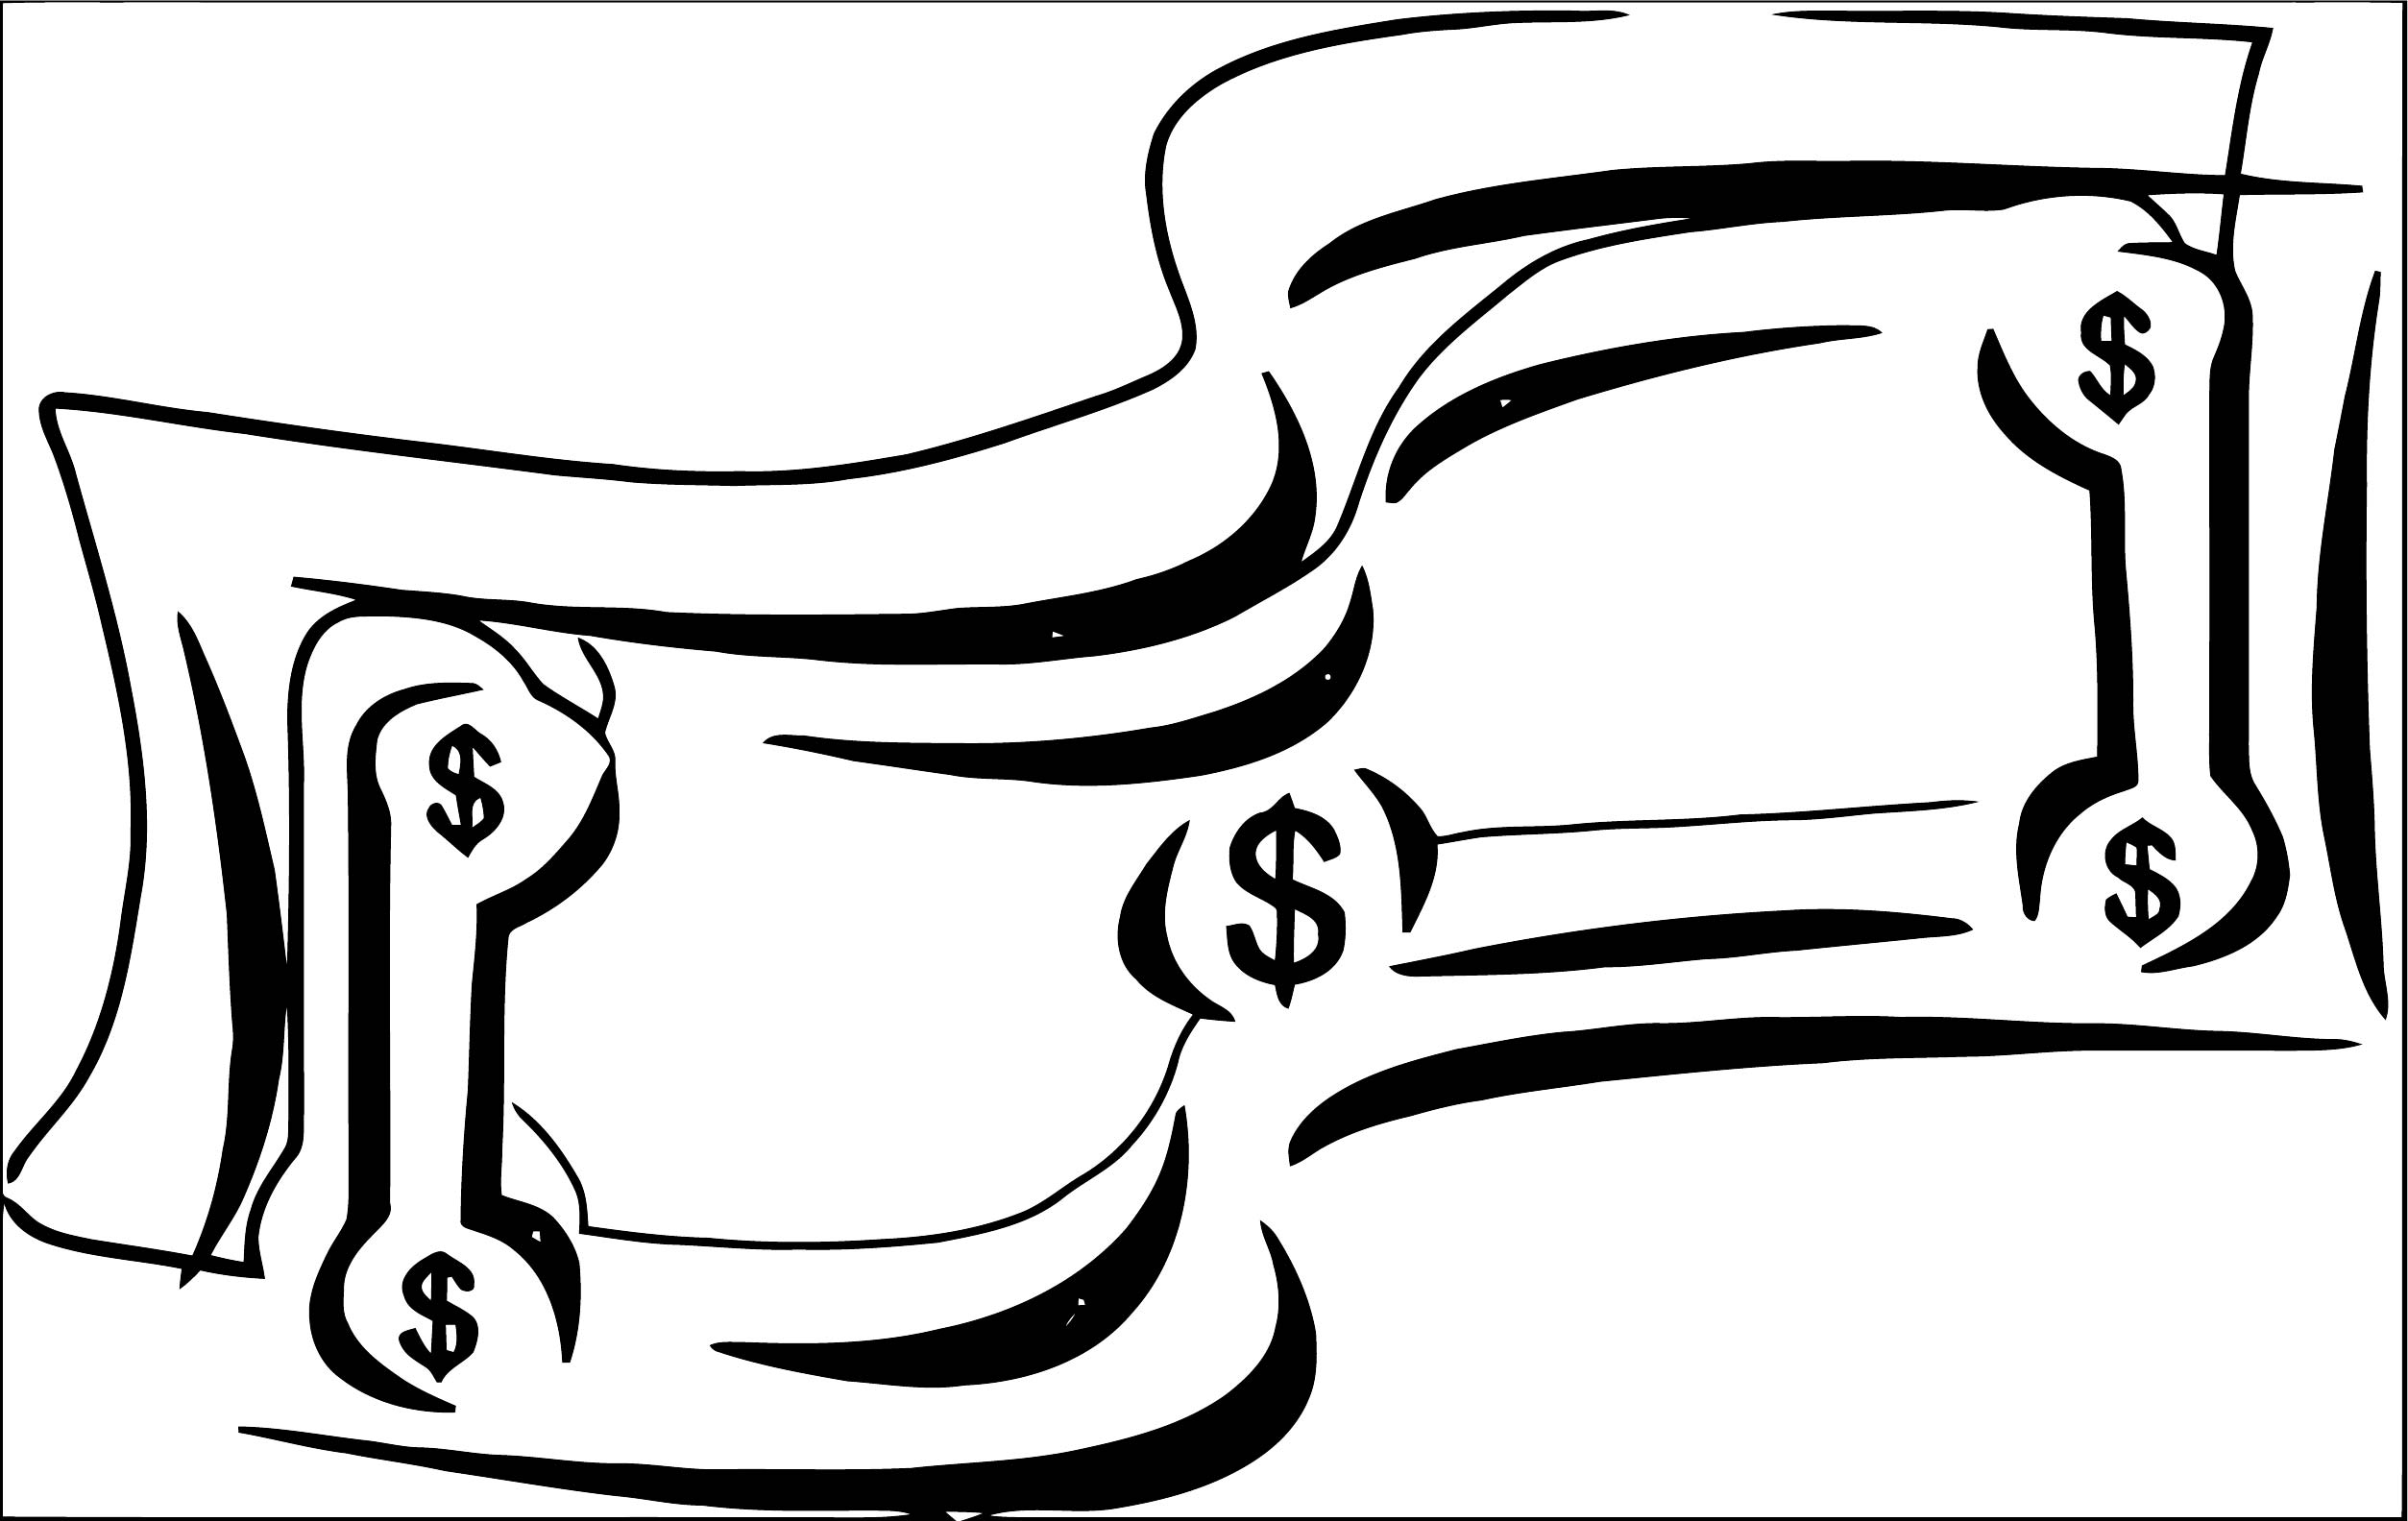 Stylized Dollar Bill Money Coloring Page